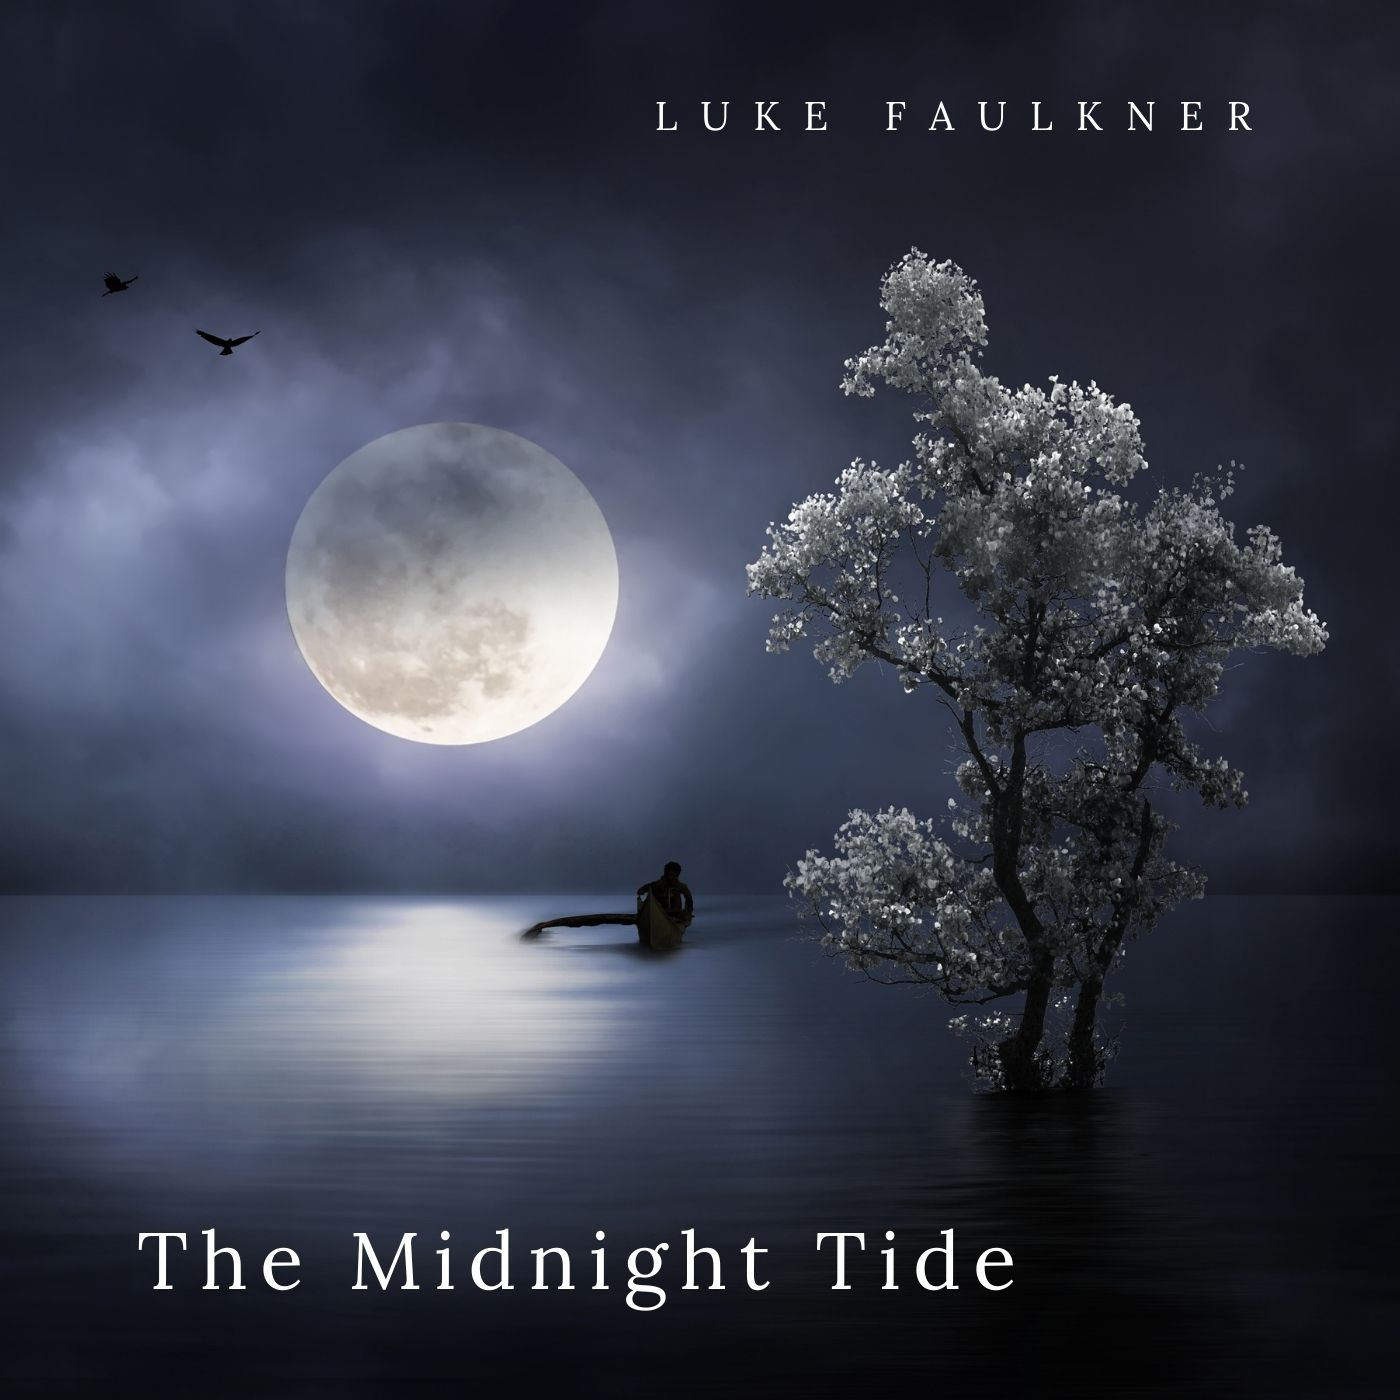 The Midnight Tide